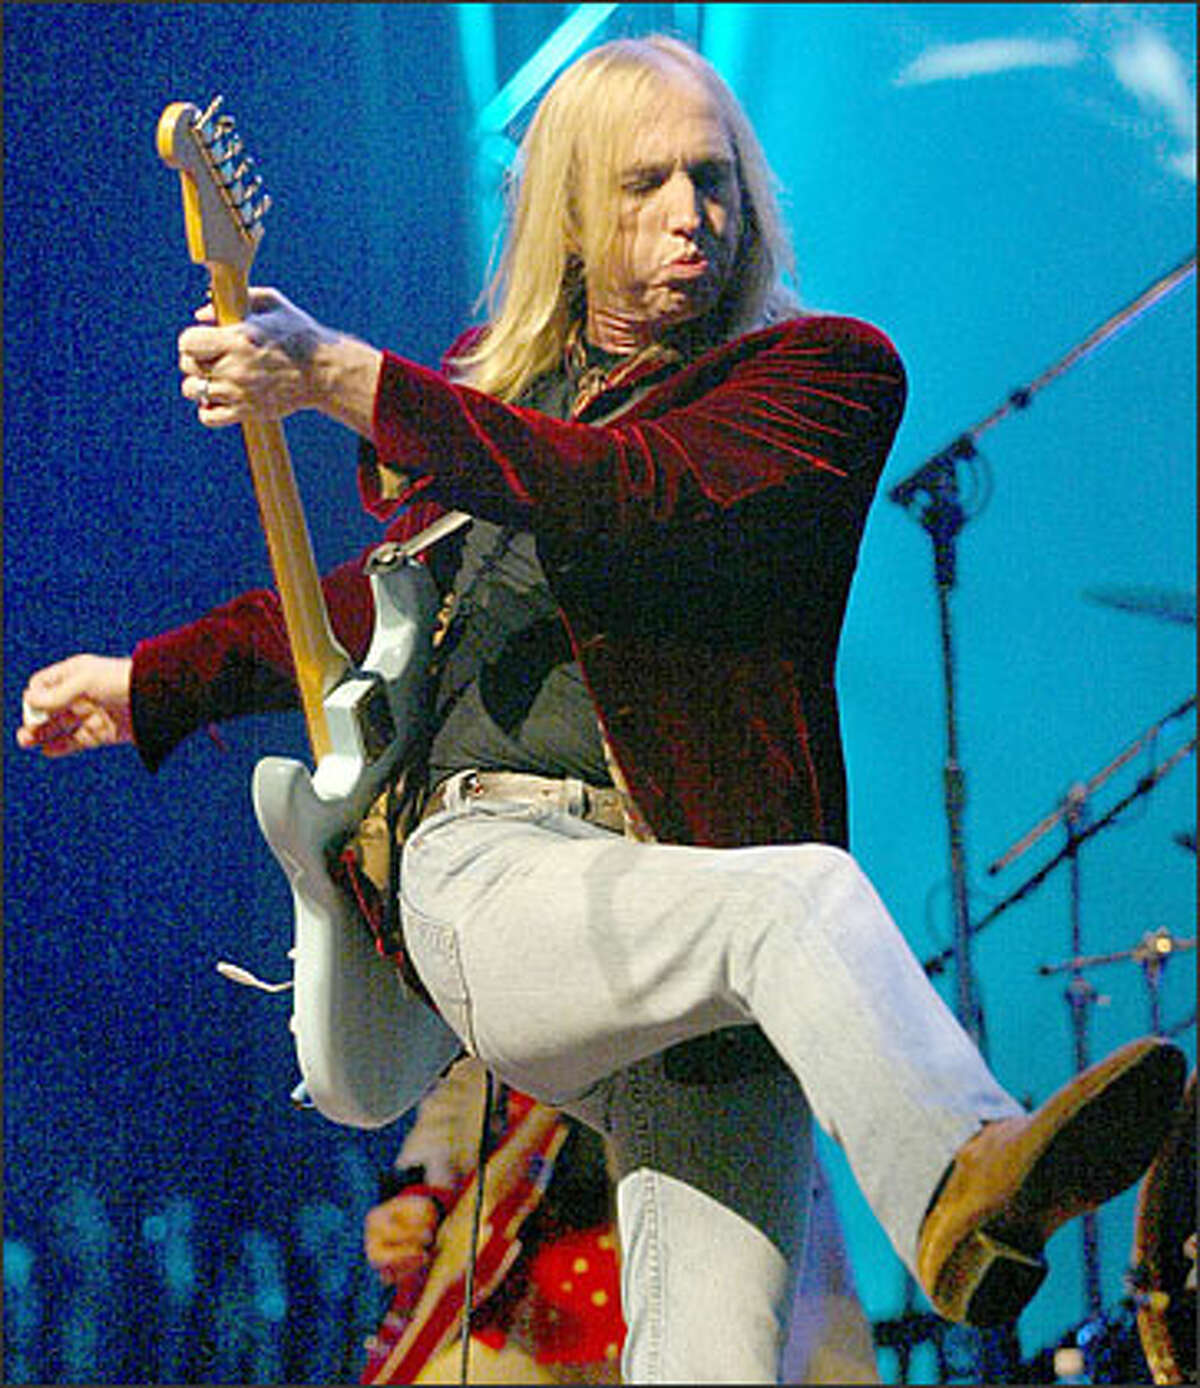 Tom Petty and the Heartbreakers perform at the Tacoma Dome Saturday night as part of the